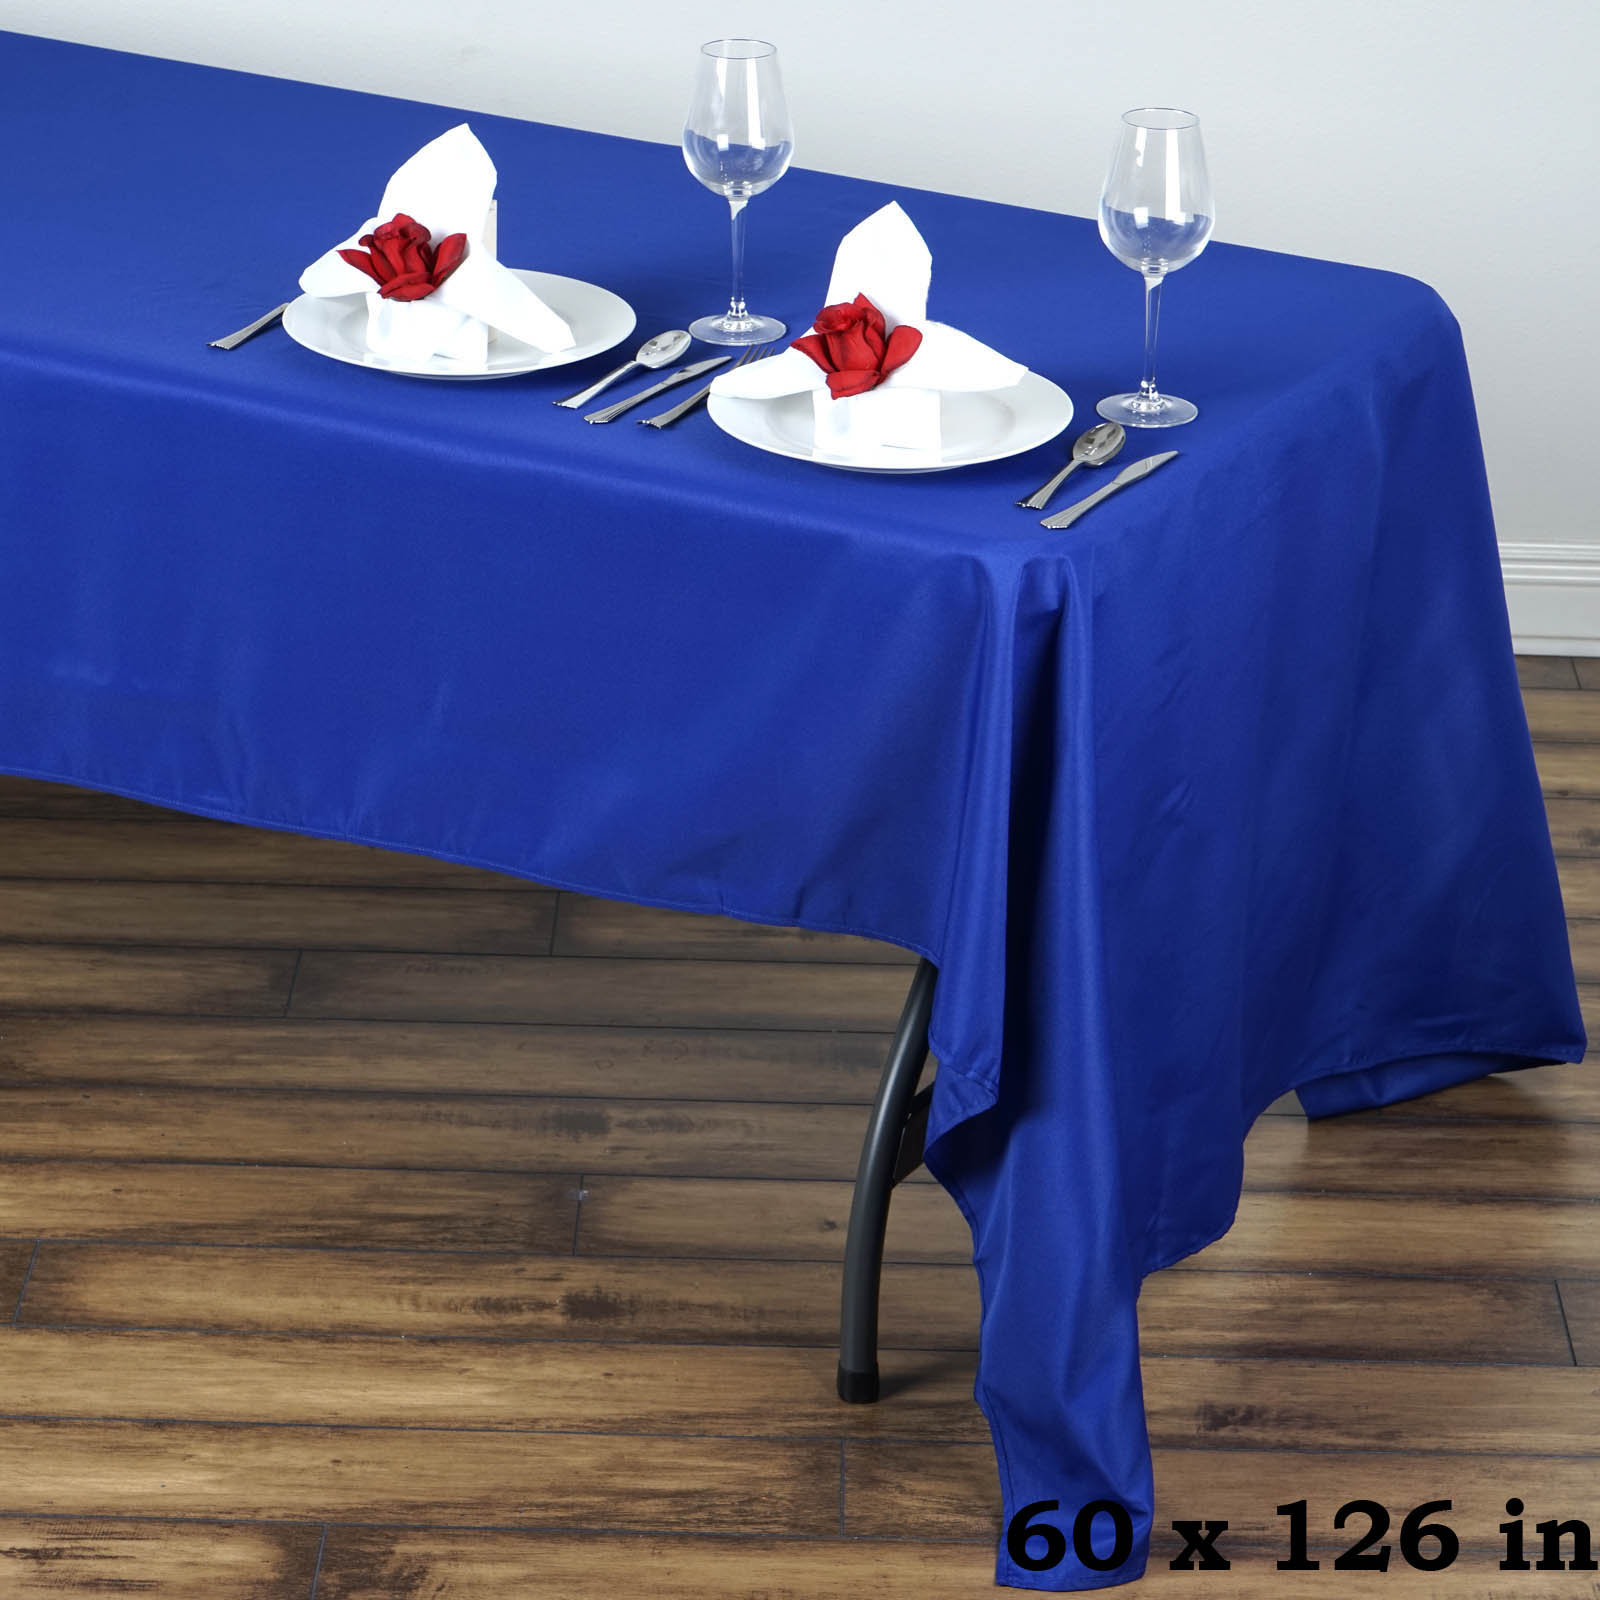 Captivating 60 034 X 126 034 Polyester Rectangular Tablecloth